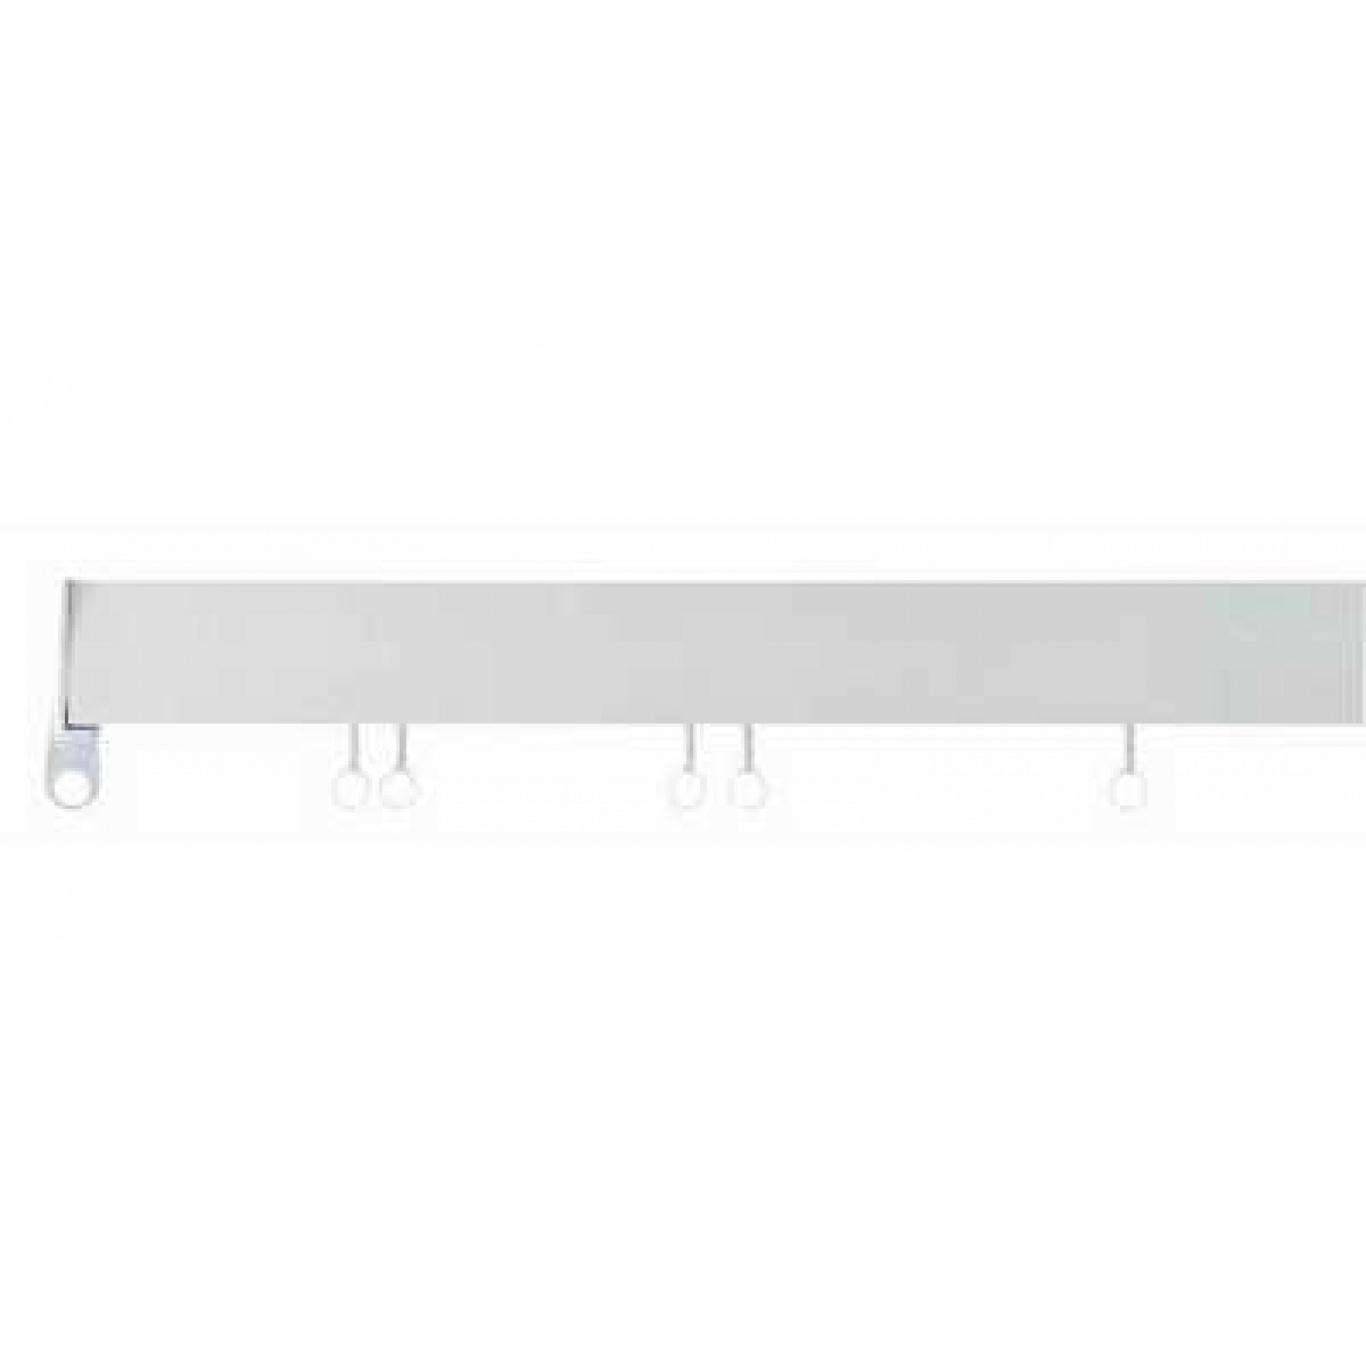 Image of Swish Deluxe White PVC Track 125cm